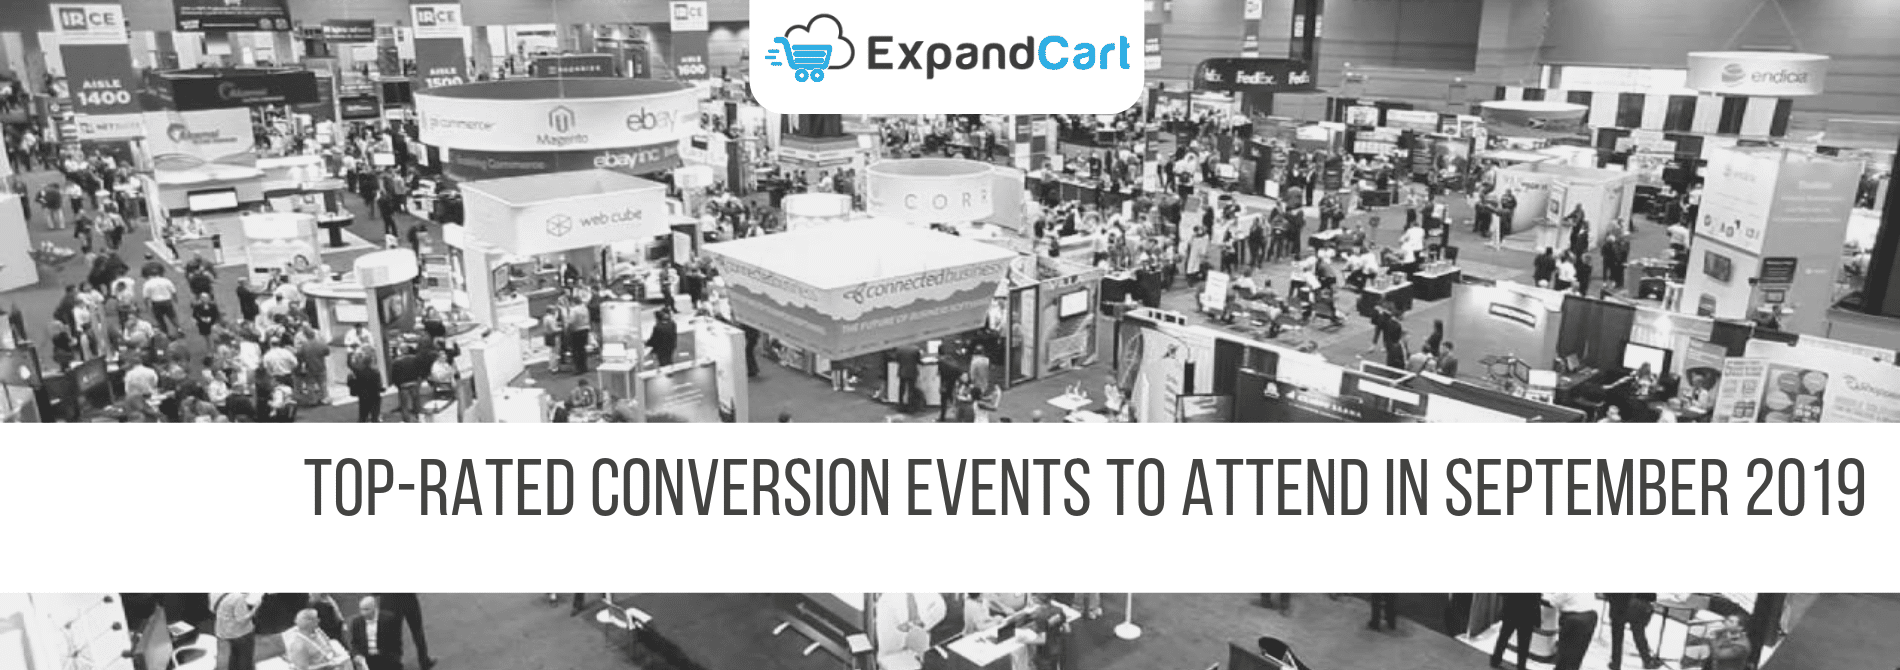 Top-Rated Conversion Events to Attend in September 2019